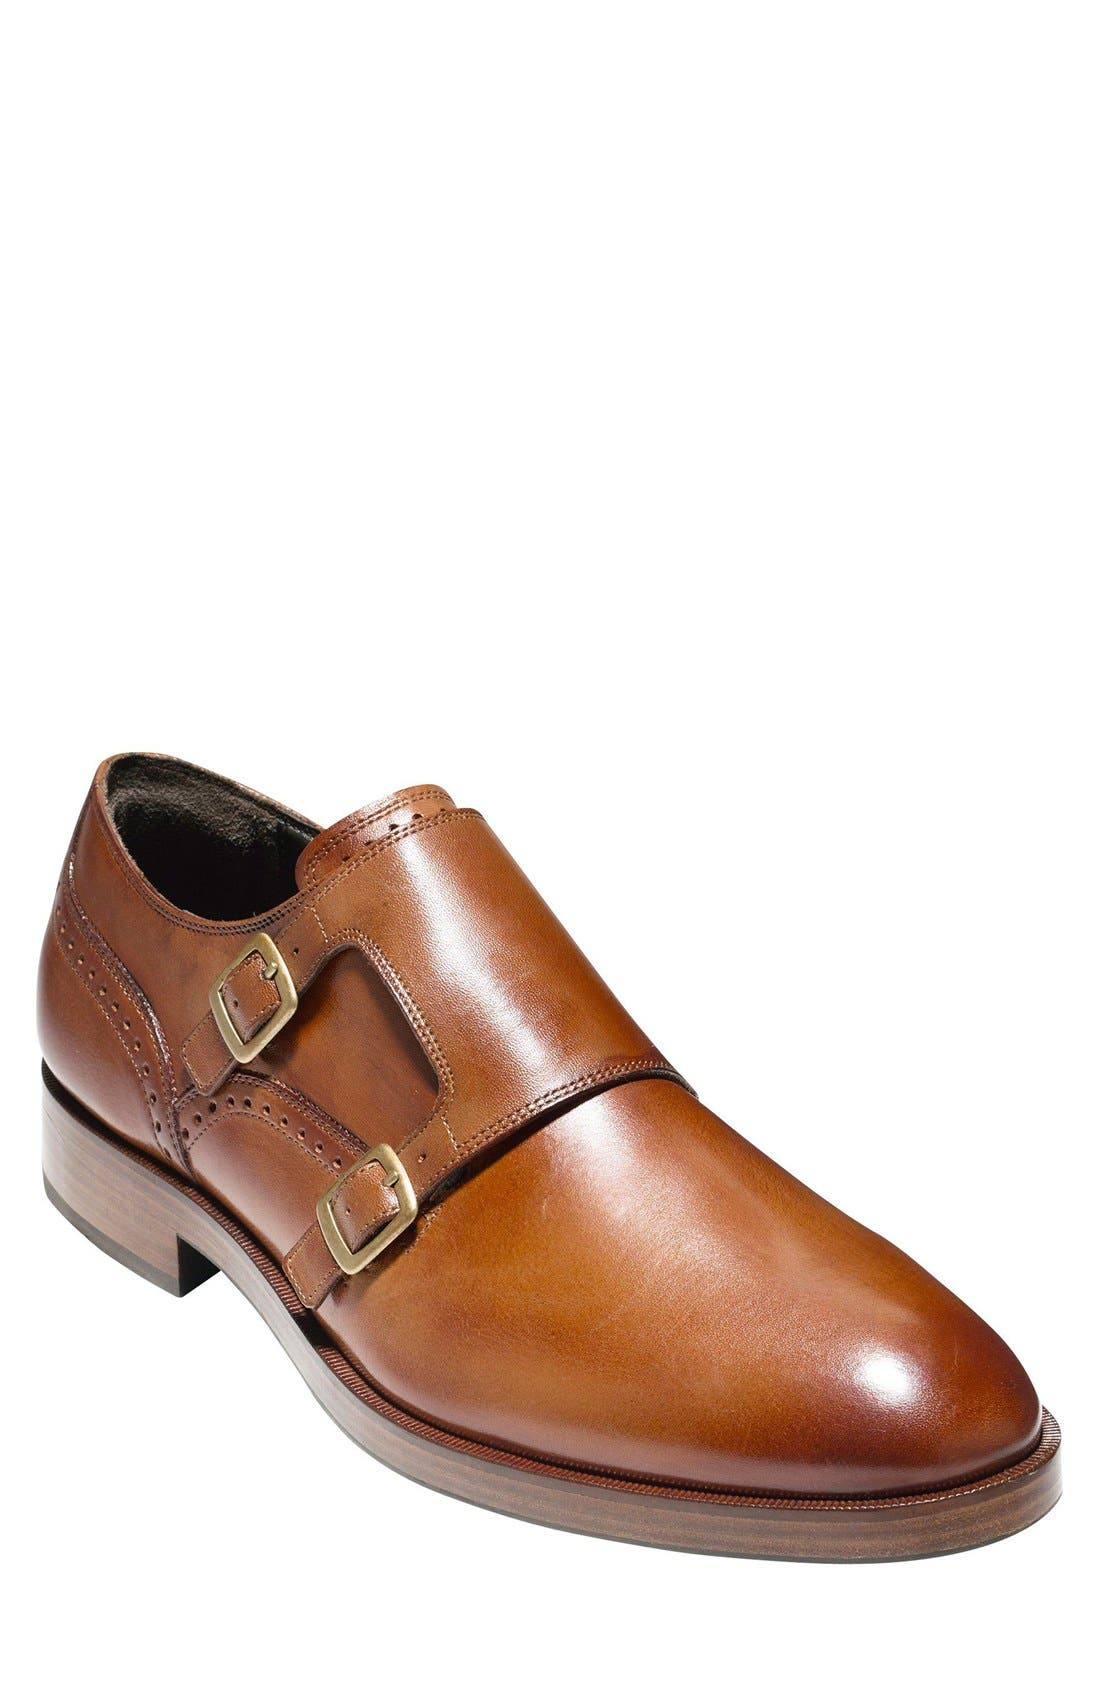 'Harrison' Double Monk Strap Shoe,                             Alternate thumbnail 11, color,                             BRITISH TAN LEATHER